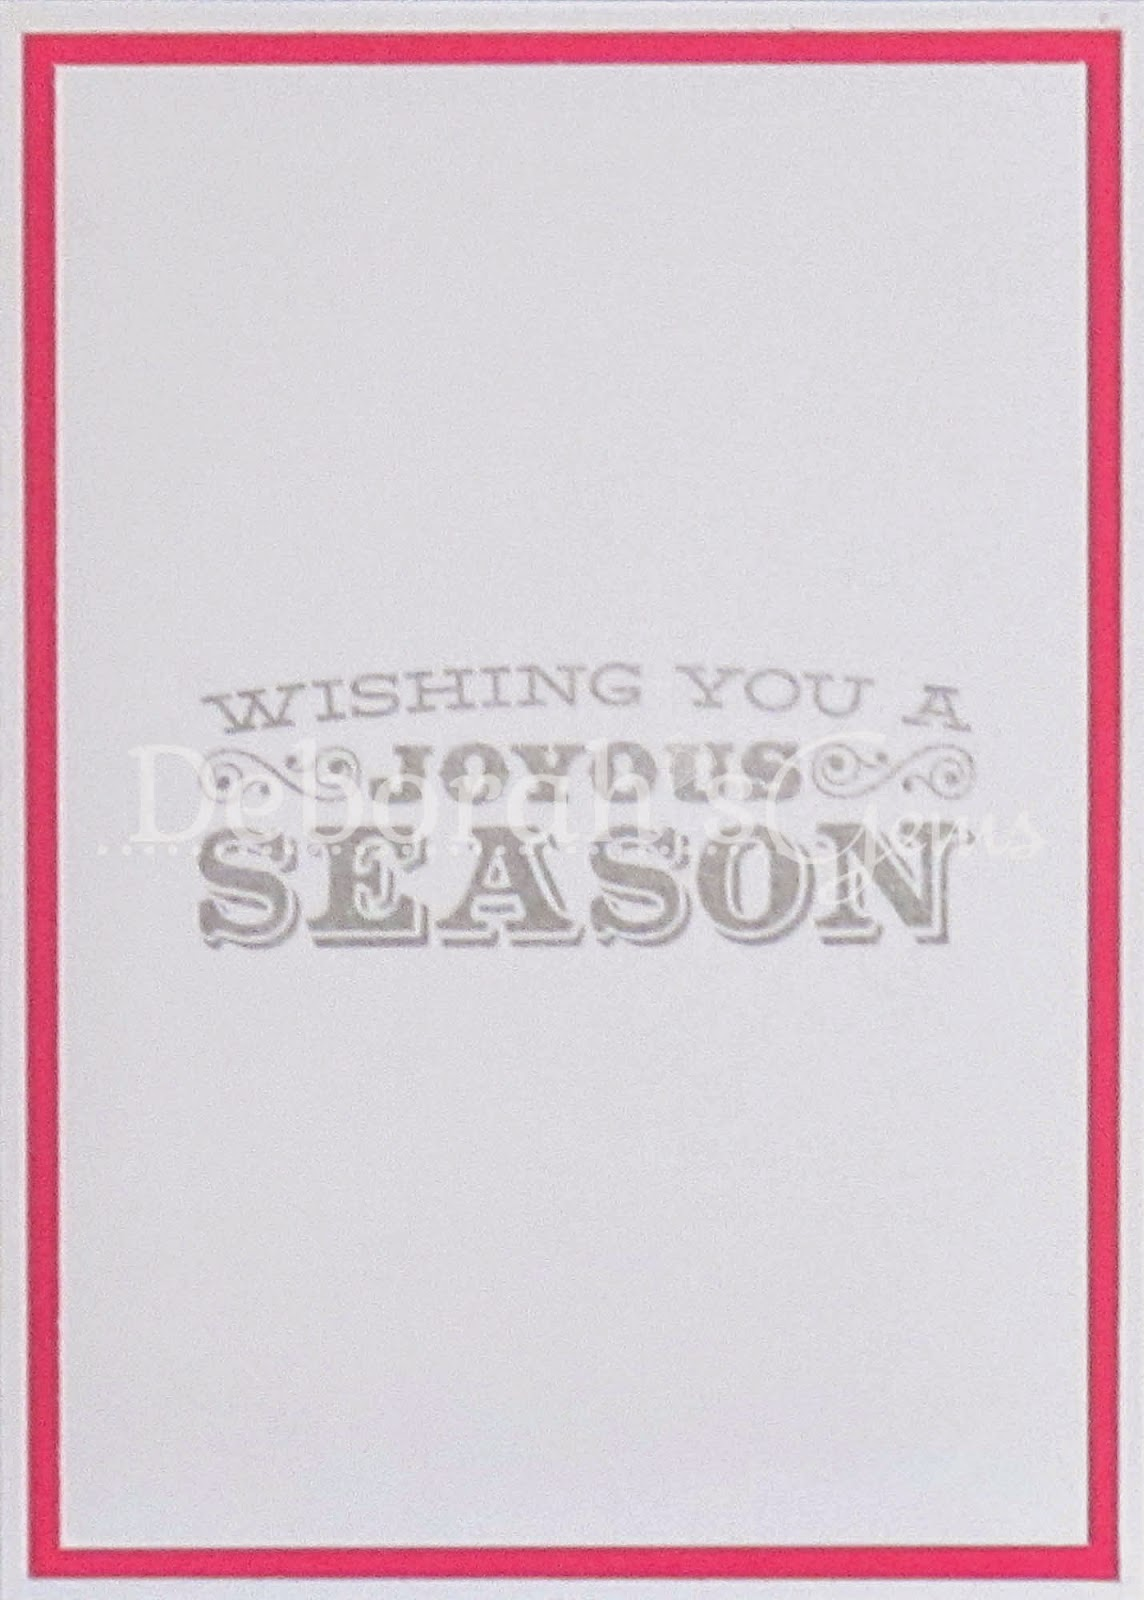 Season's Greetings inside - photo by Deborah Frings - Deborah's Gems